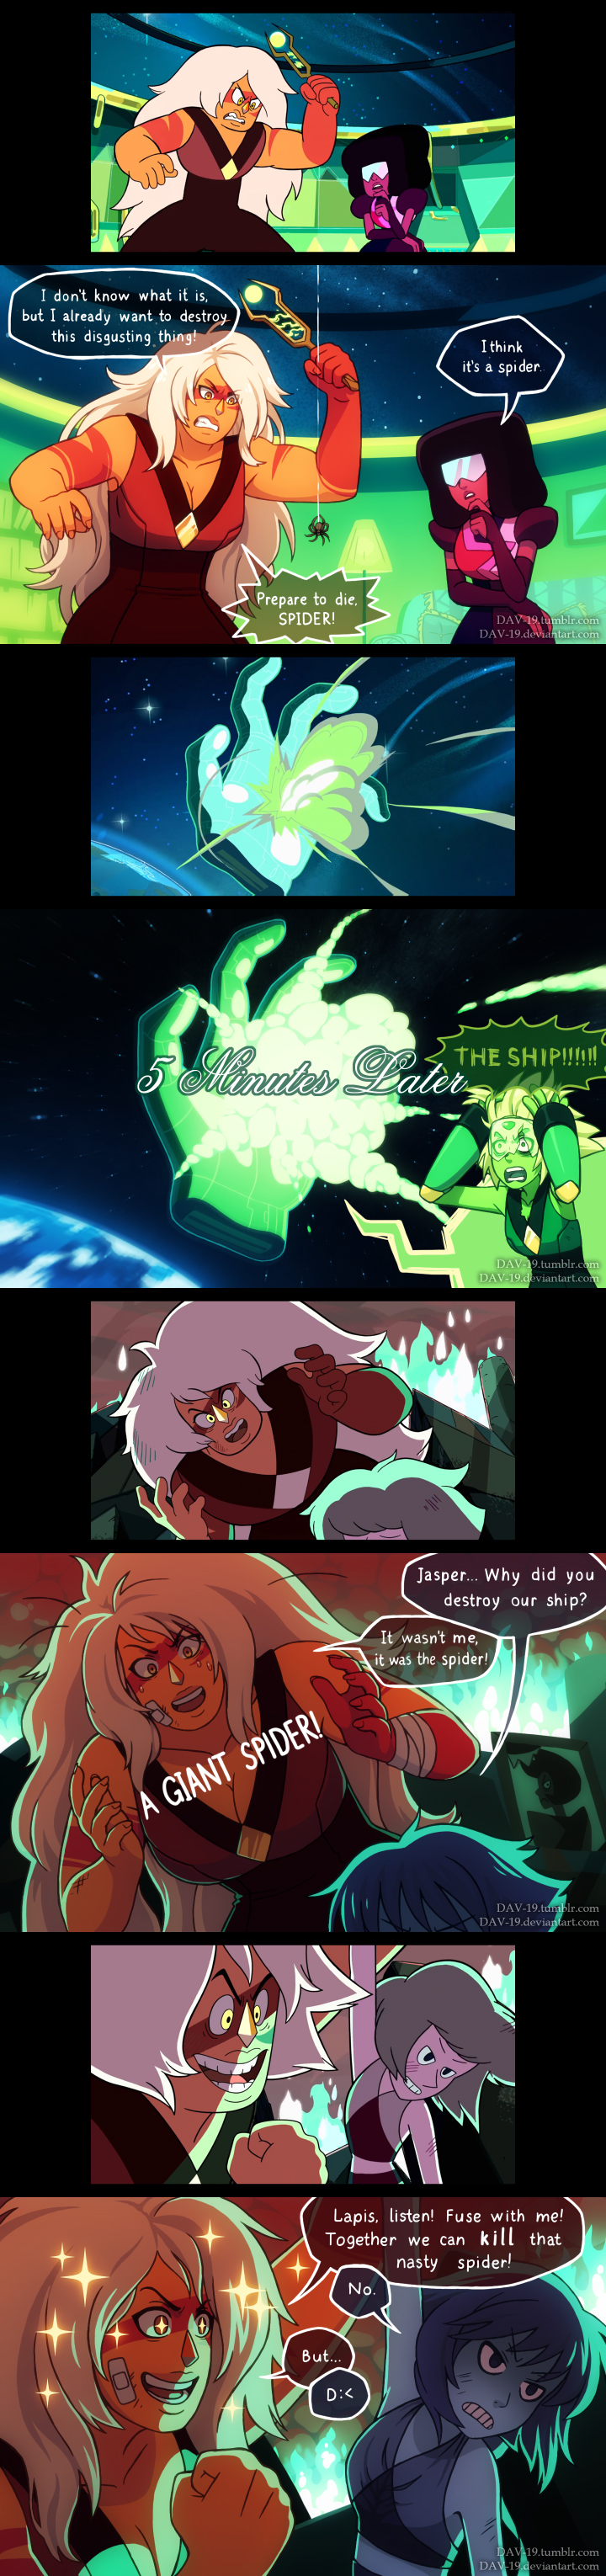 Steven Universe Screenshots Redraw